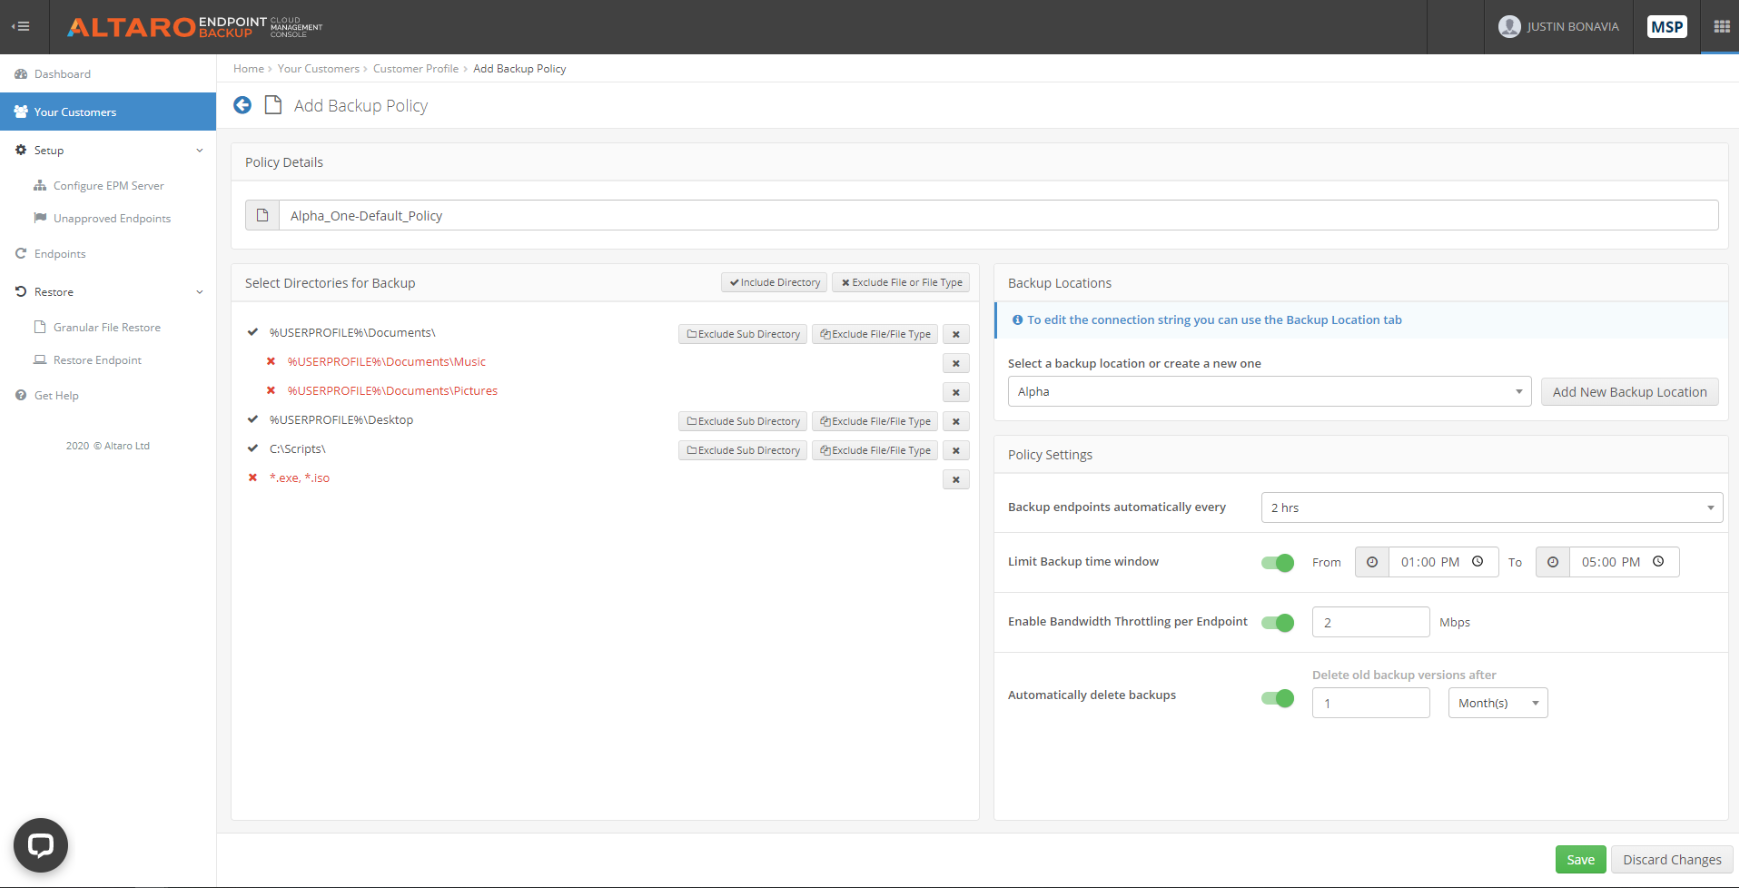 Altaro endpoint backup - backup policy